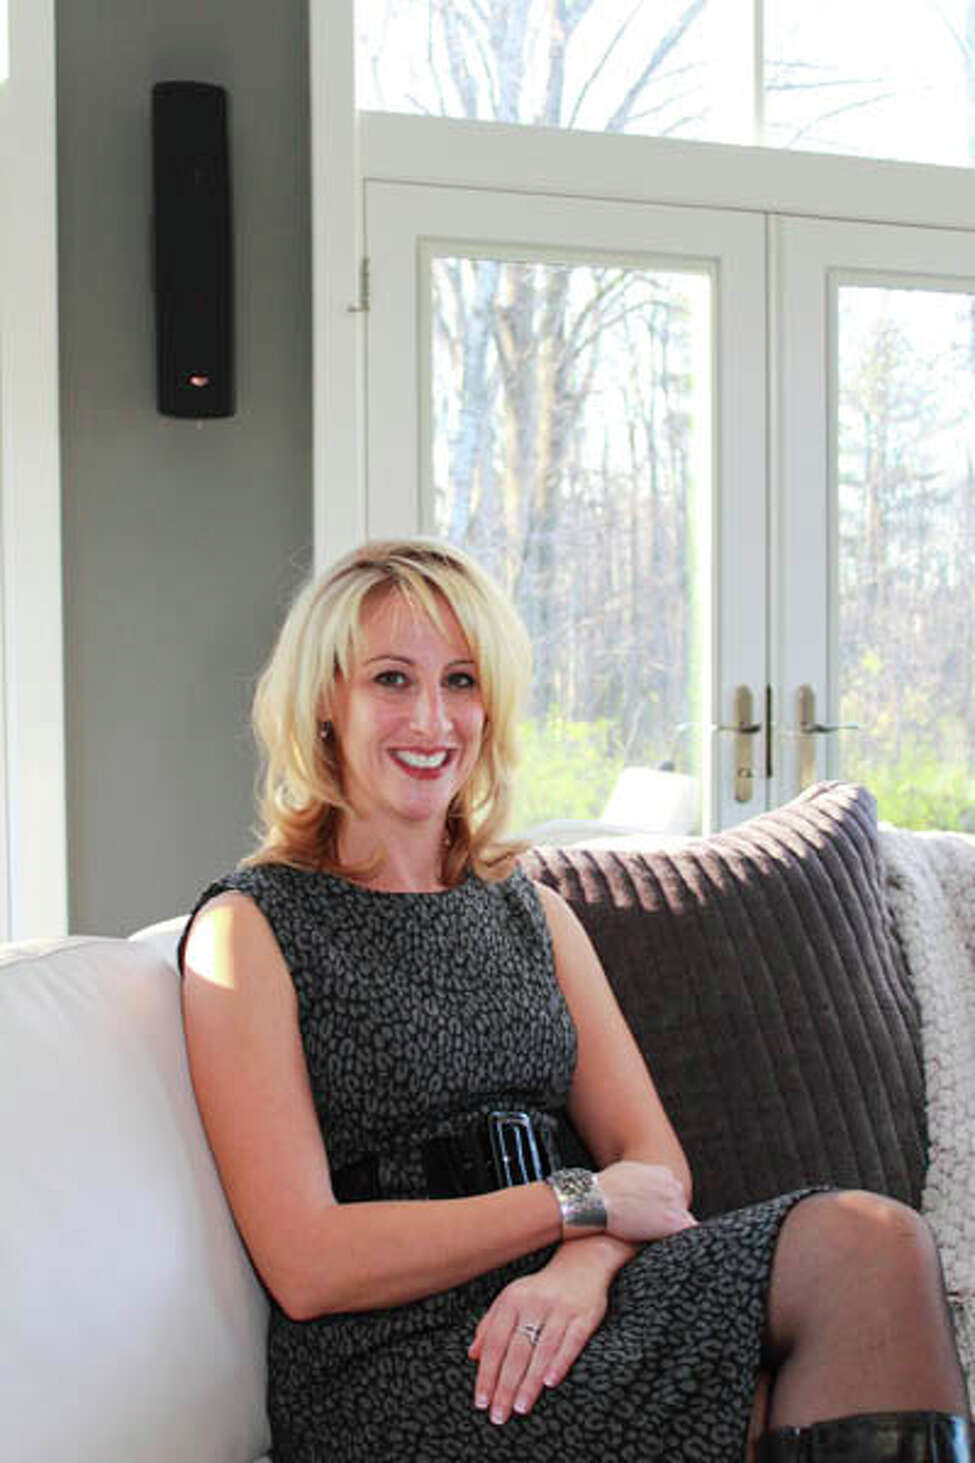 Sandra Fox's Clifton Park home, built by Theodore J. Cillis III of Cillis Builders, focuses on distinctive touches to create a custom splendor. (Nancy Bruno/Life@Home) Click here to read the story.